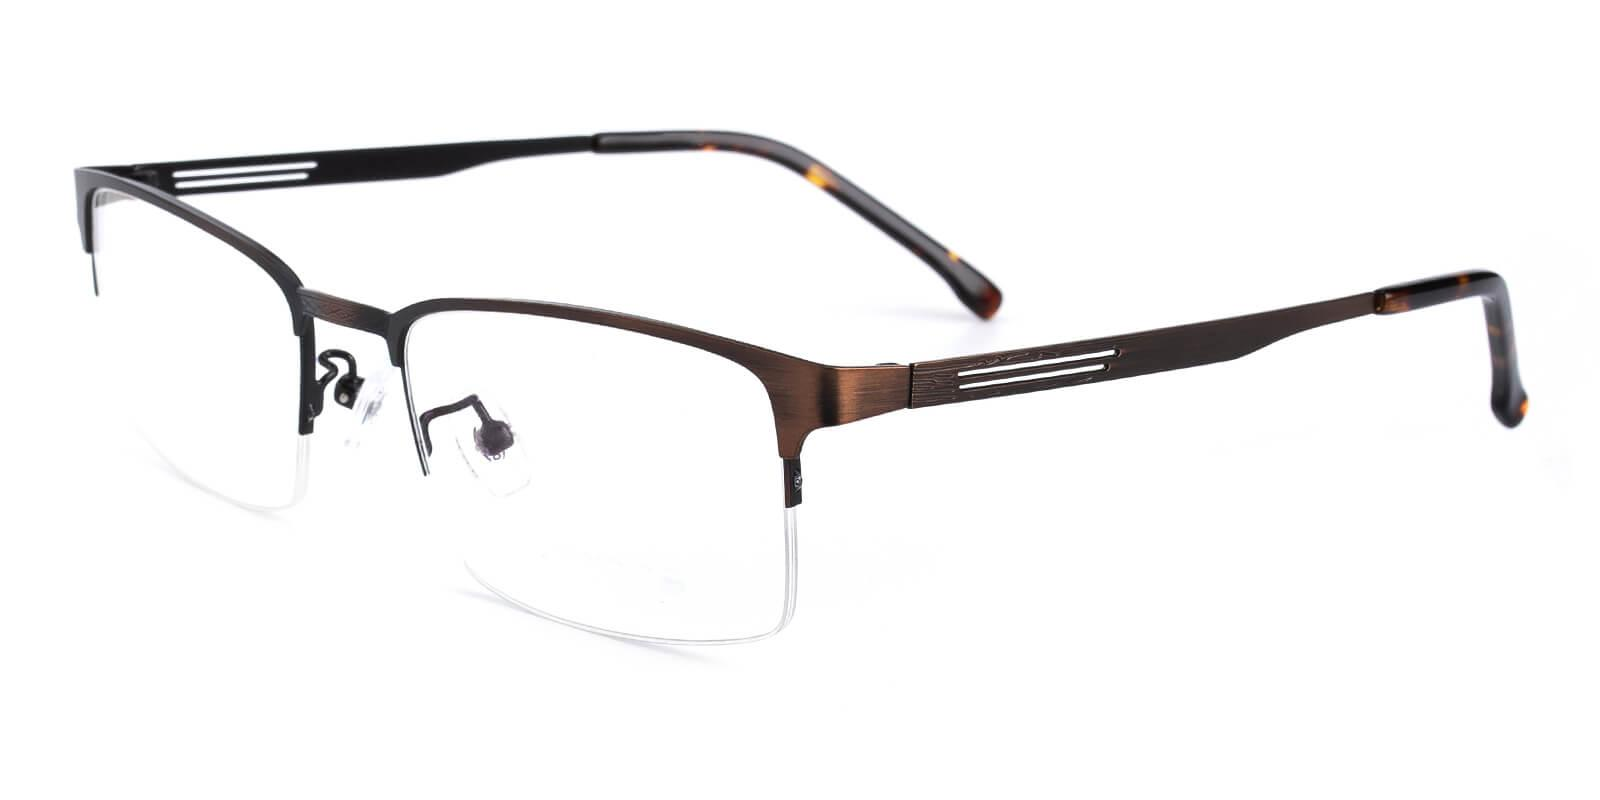 Emmptie-Brown-Rectangle-Metal-Eyeglasses-additional1